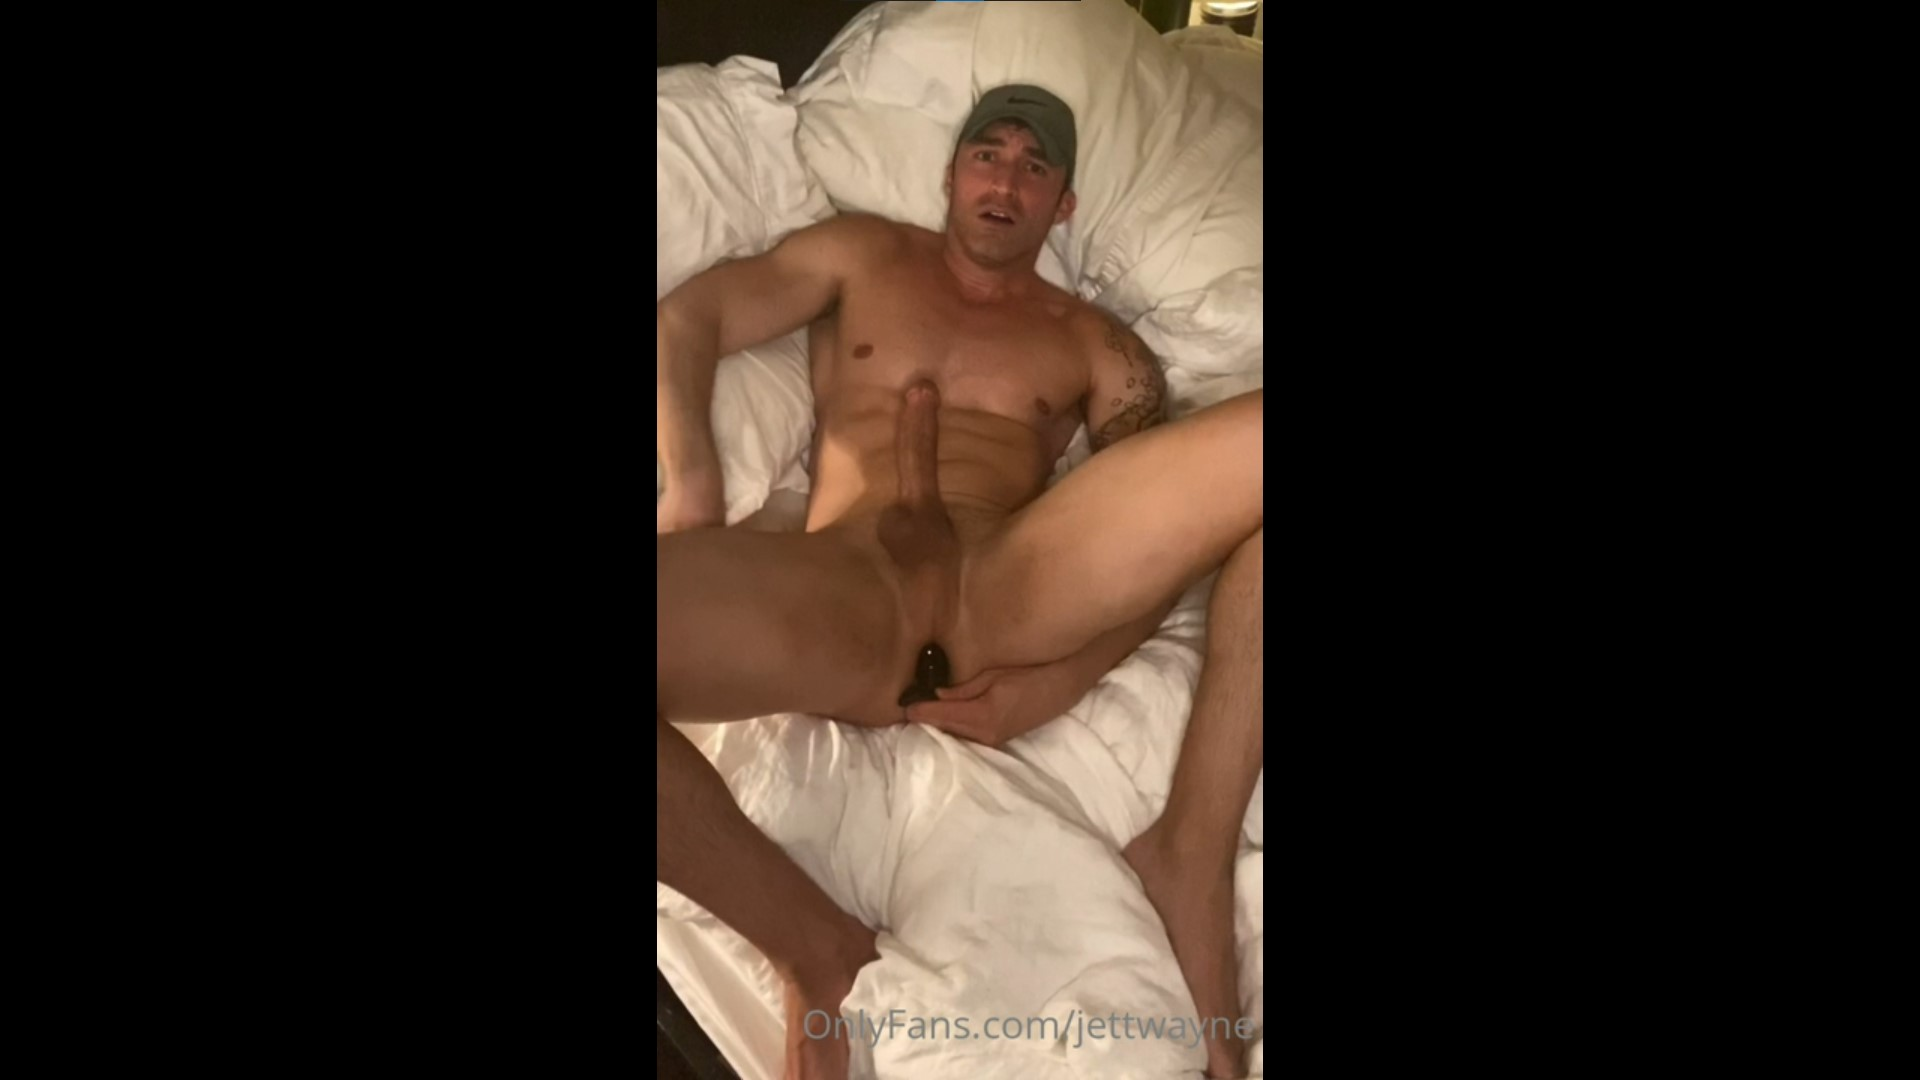 Playing with a butt plug while jerking off - Jett Wayne (officialjett)